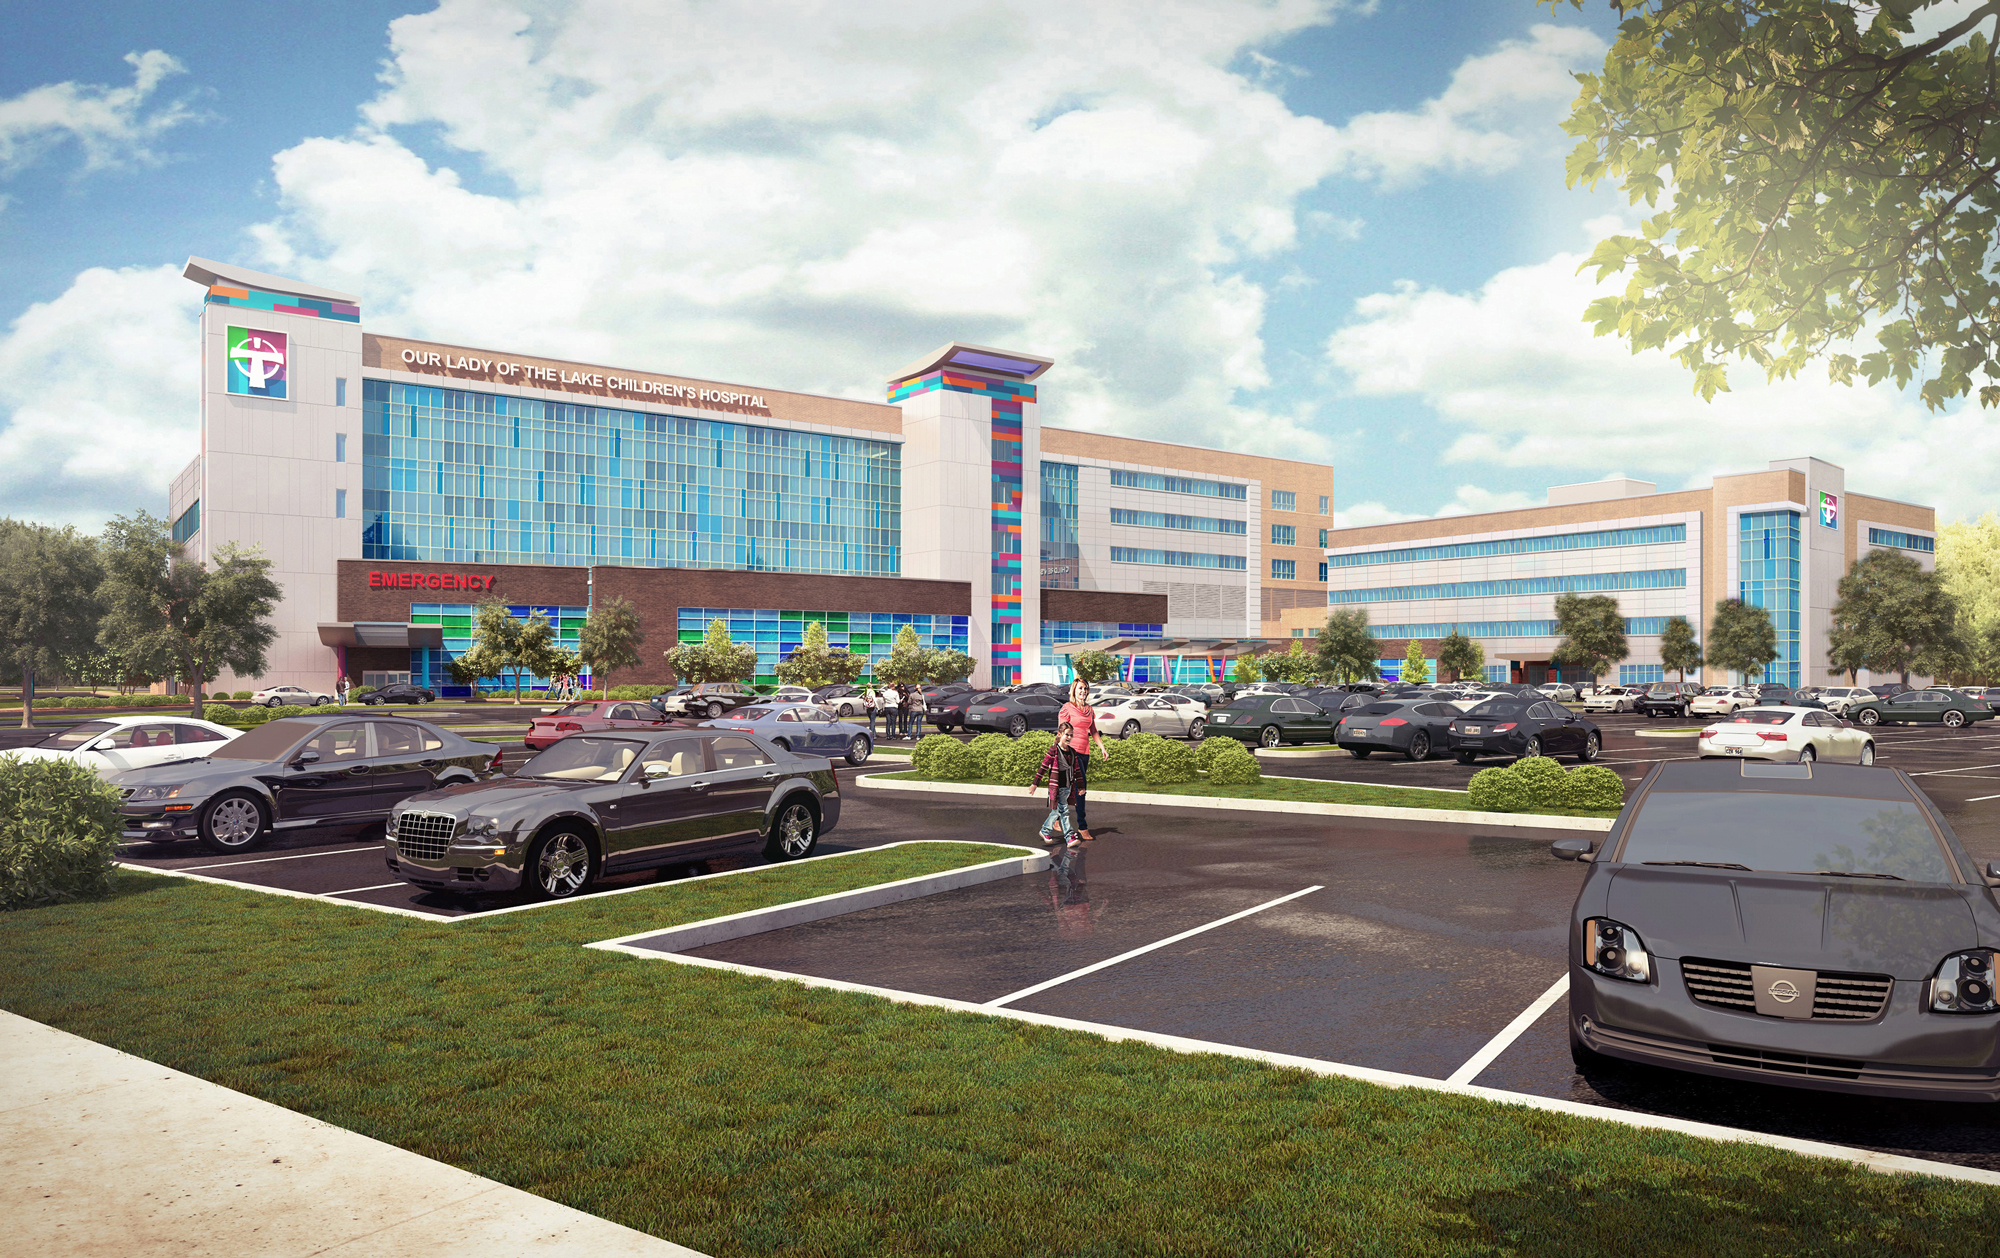 ADAMS is proud to be part of the OLOL Children's Hospital ground breaking